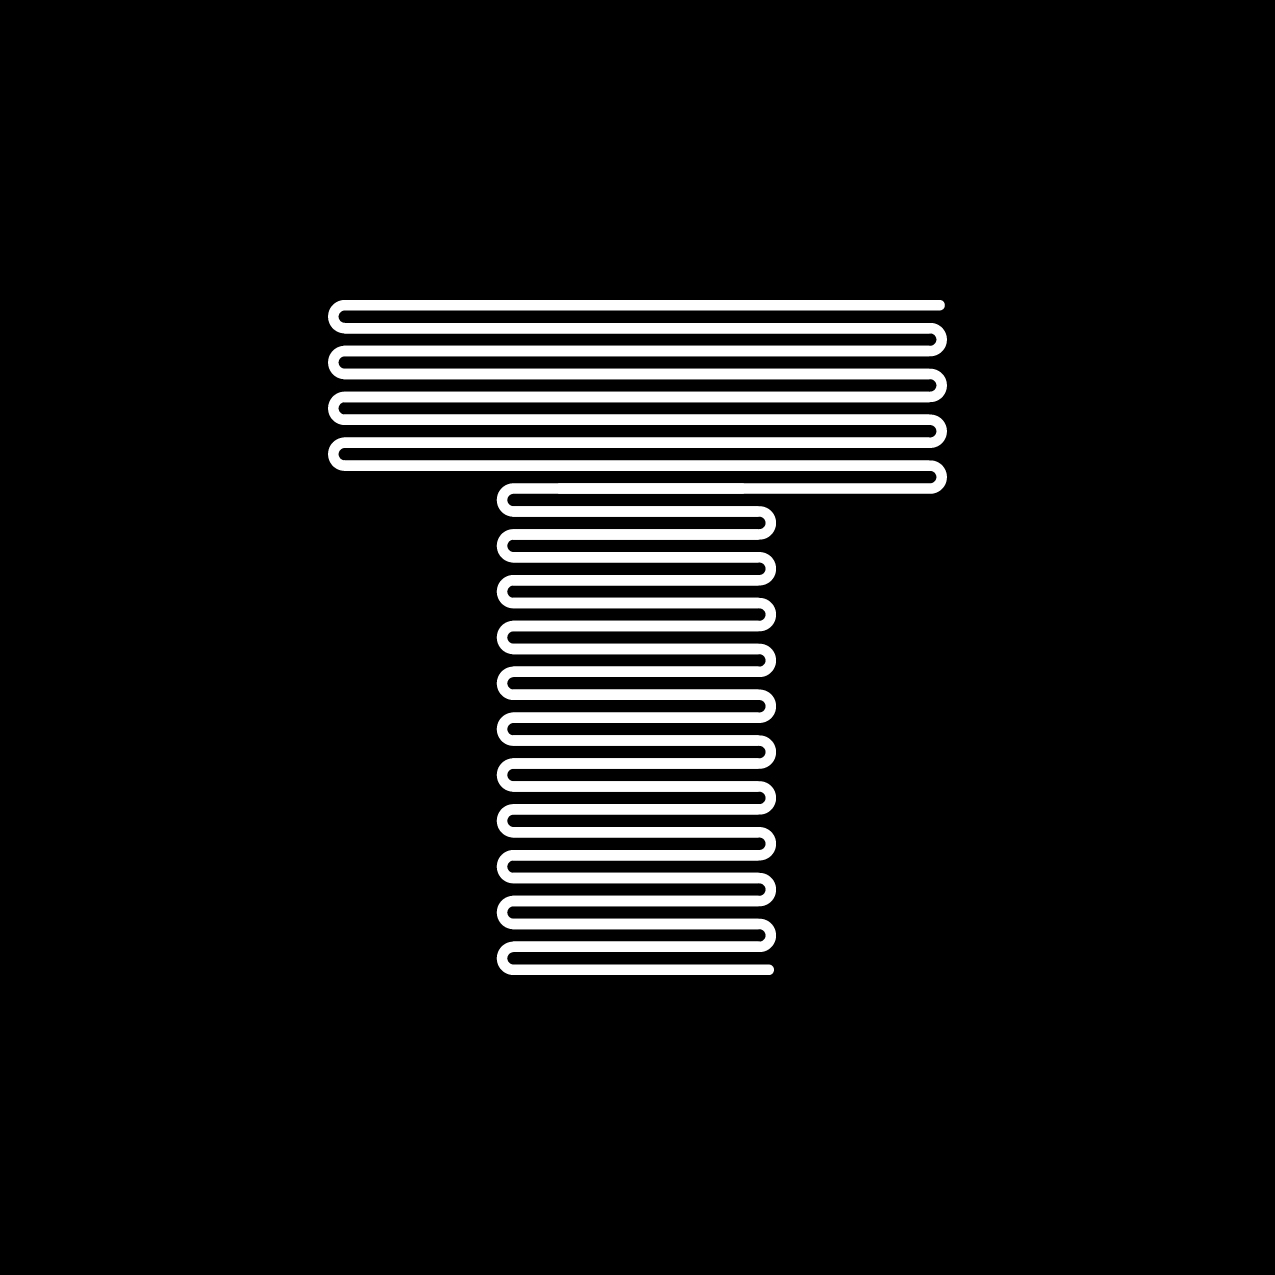 Letter T1 Design by Furia